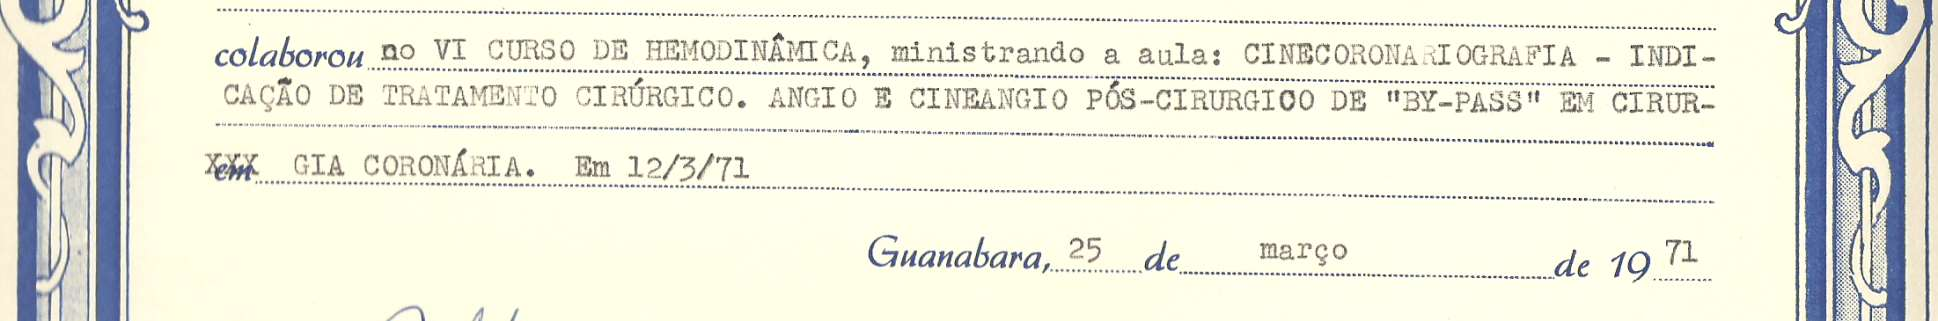 1971:Certificado Estado da Guanabara Instituto